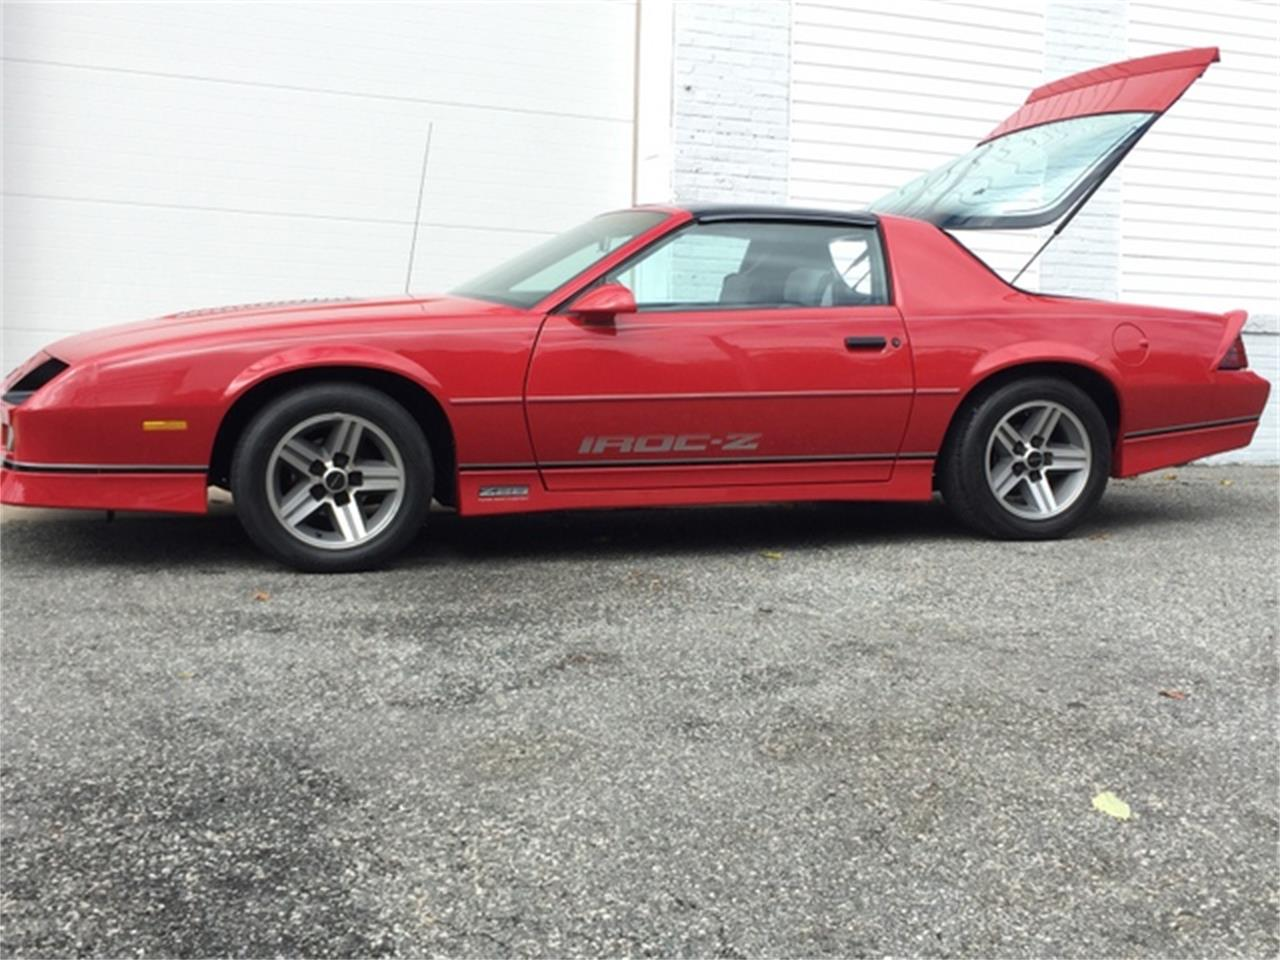 1985 Chevrolet Camaro IROC Z28 (CC-1166117) for sale in East Longmeadow, Massachusetts